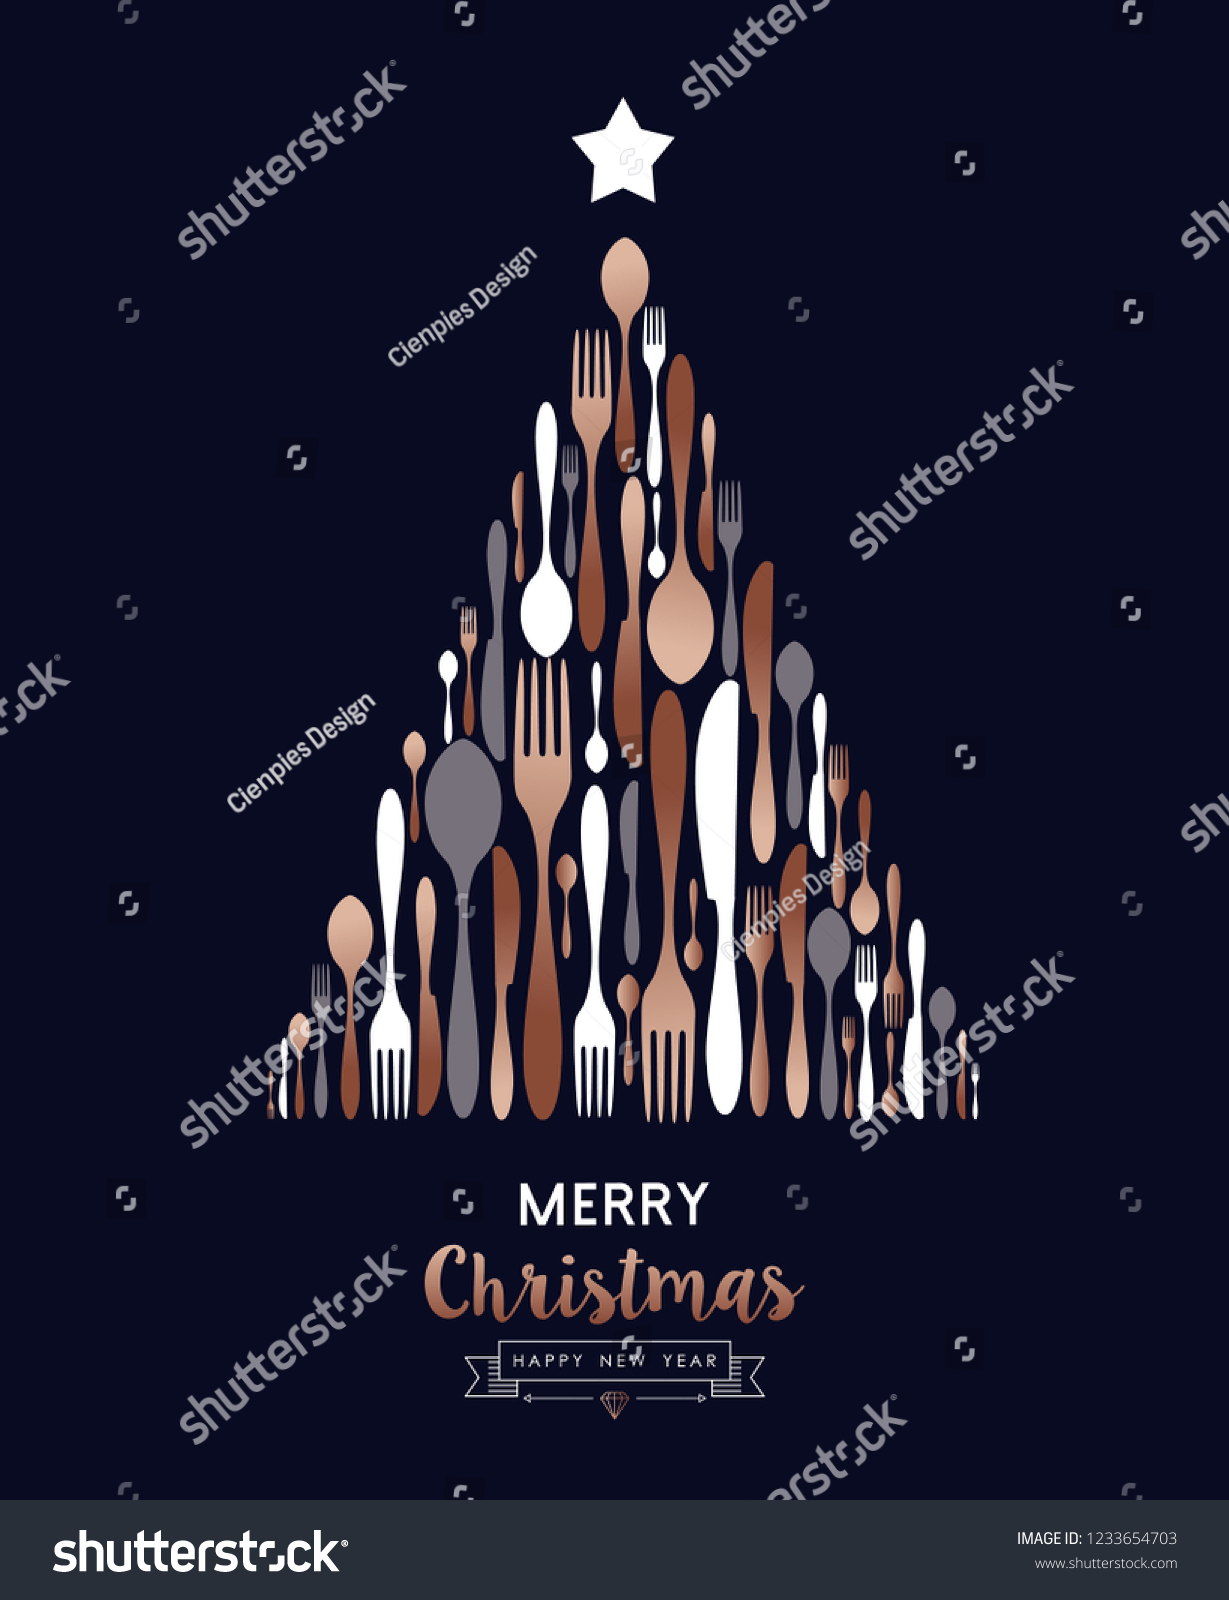 merry christmas and happy new year greeting card of food cutlery utensils making pine tree shape